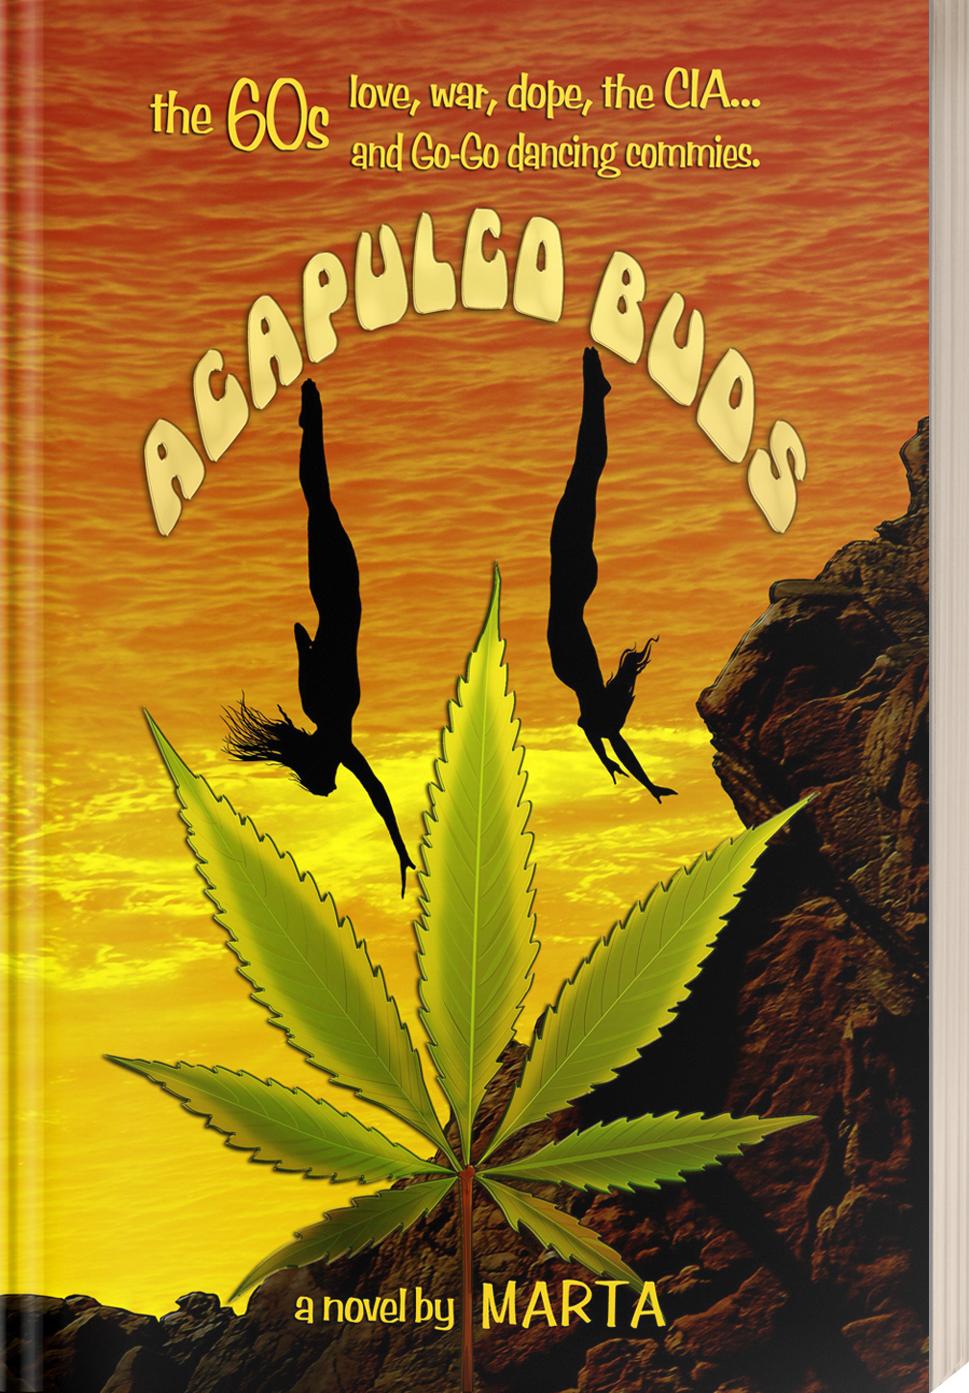 Acapulco Buds Political Comedy Novel In The Late 1960s Love War